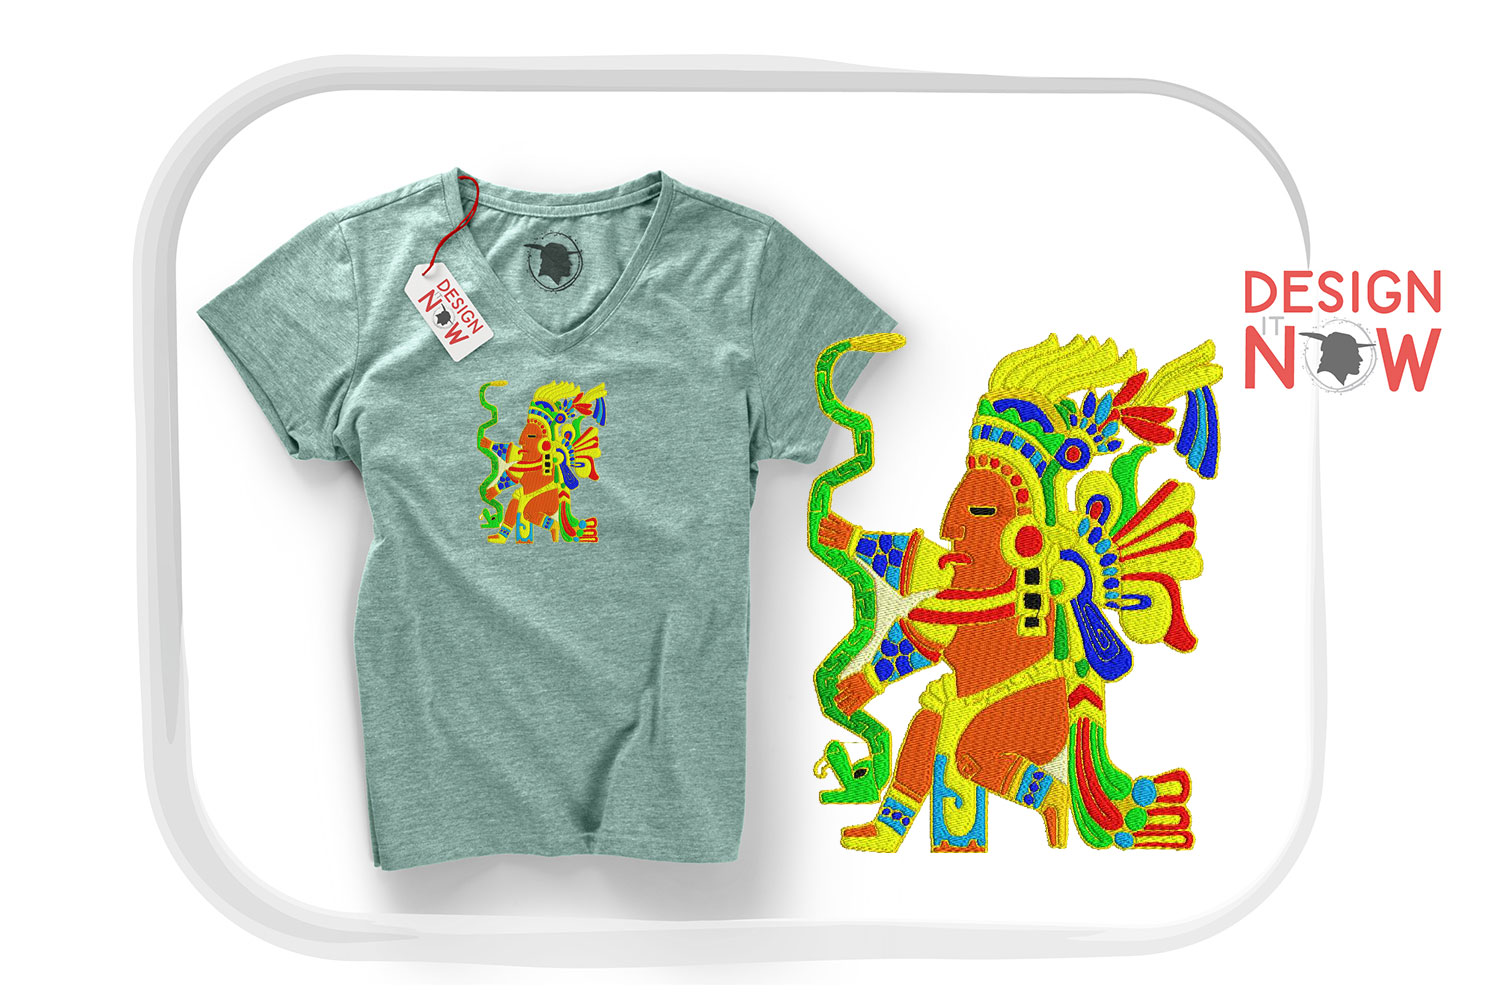 Inca Culture Embroidery Design, Inca Mythology Embroidery example image 2